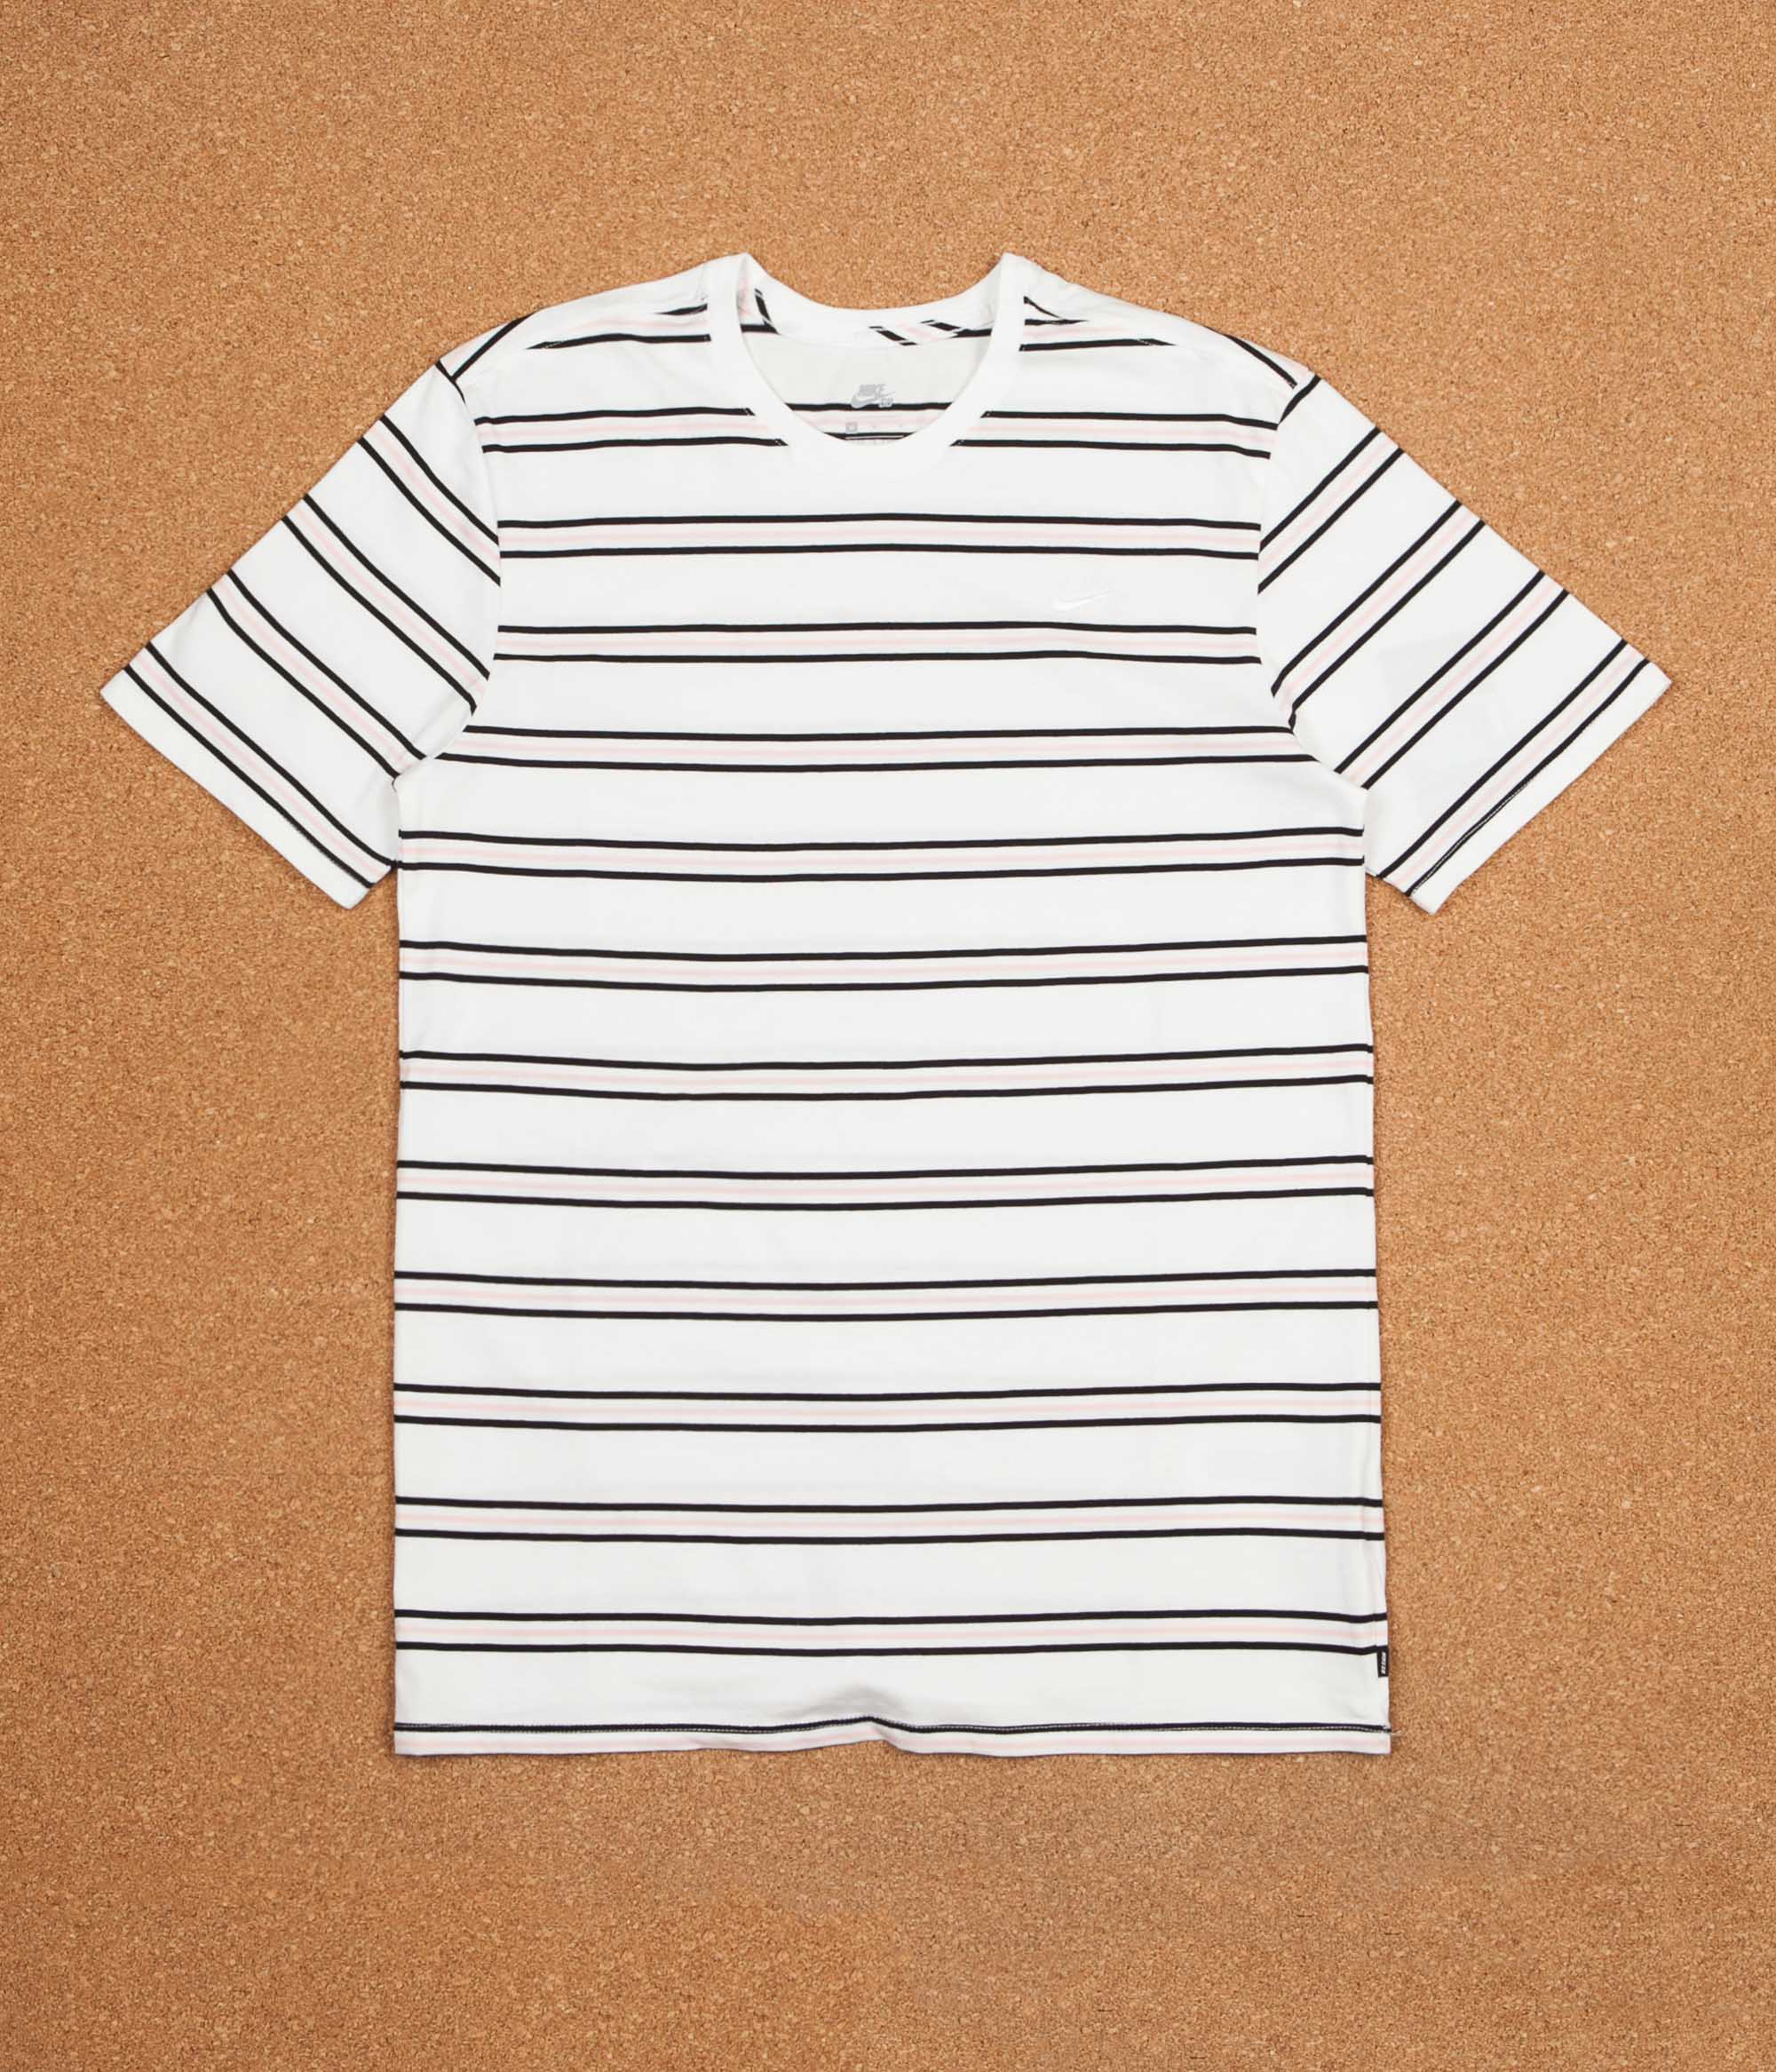 db831bc6a7f1 Nike SB Summer Stripe T-Shirt - White   White